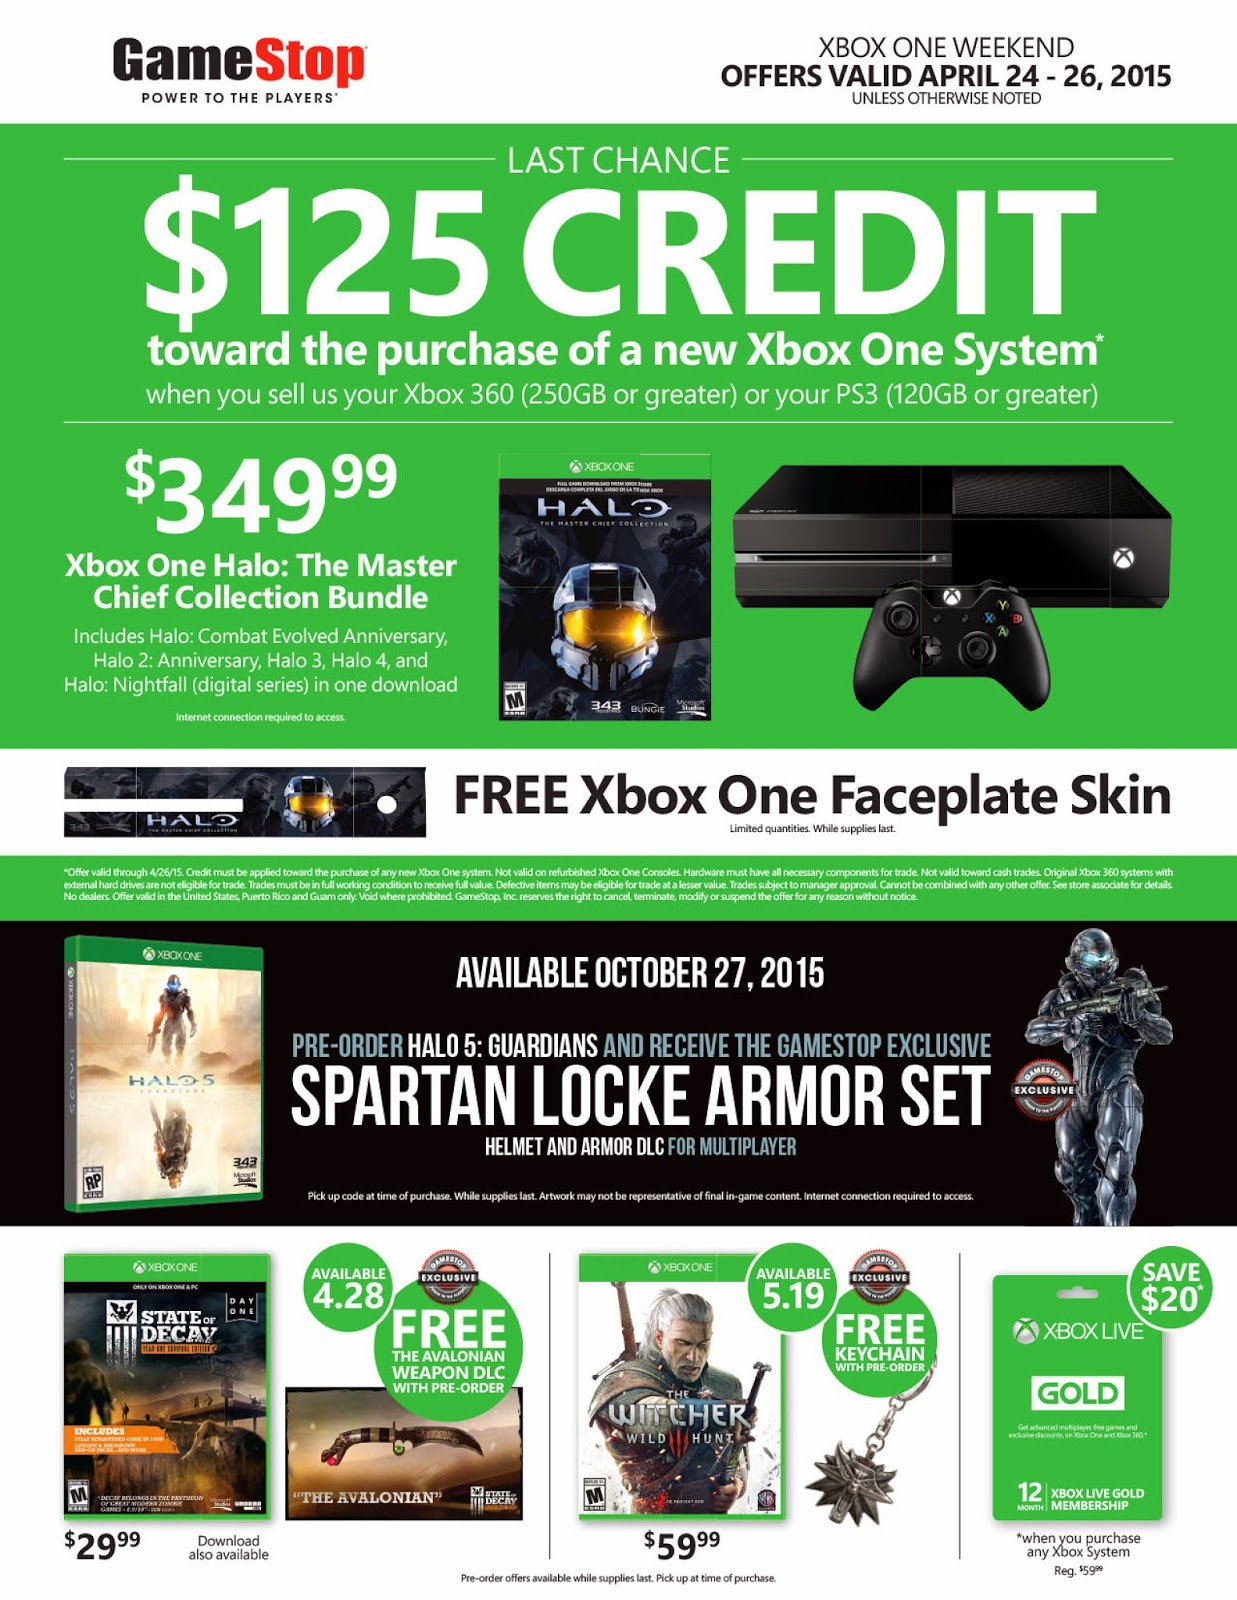 Get the latest GameStop coupons and discounts for PS4, Xbox One, and other consoles. Check for coupons on your favorite video games and devices. coupon codes, deals and discounts all in one place. Think of our coupon page as the premier destination for savings on all of your favorite gaming and entertainment needs. This is